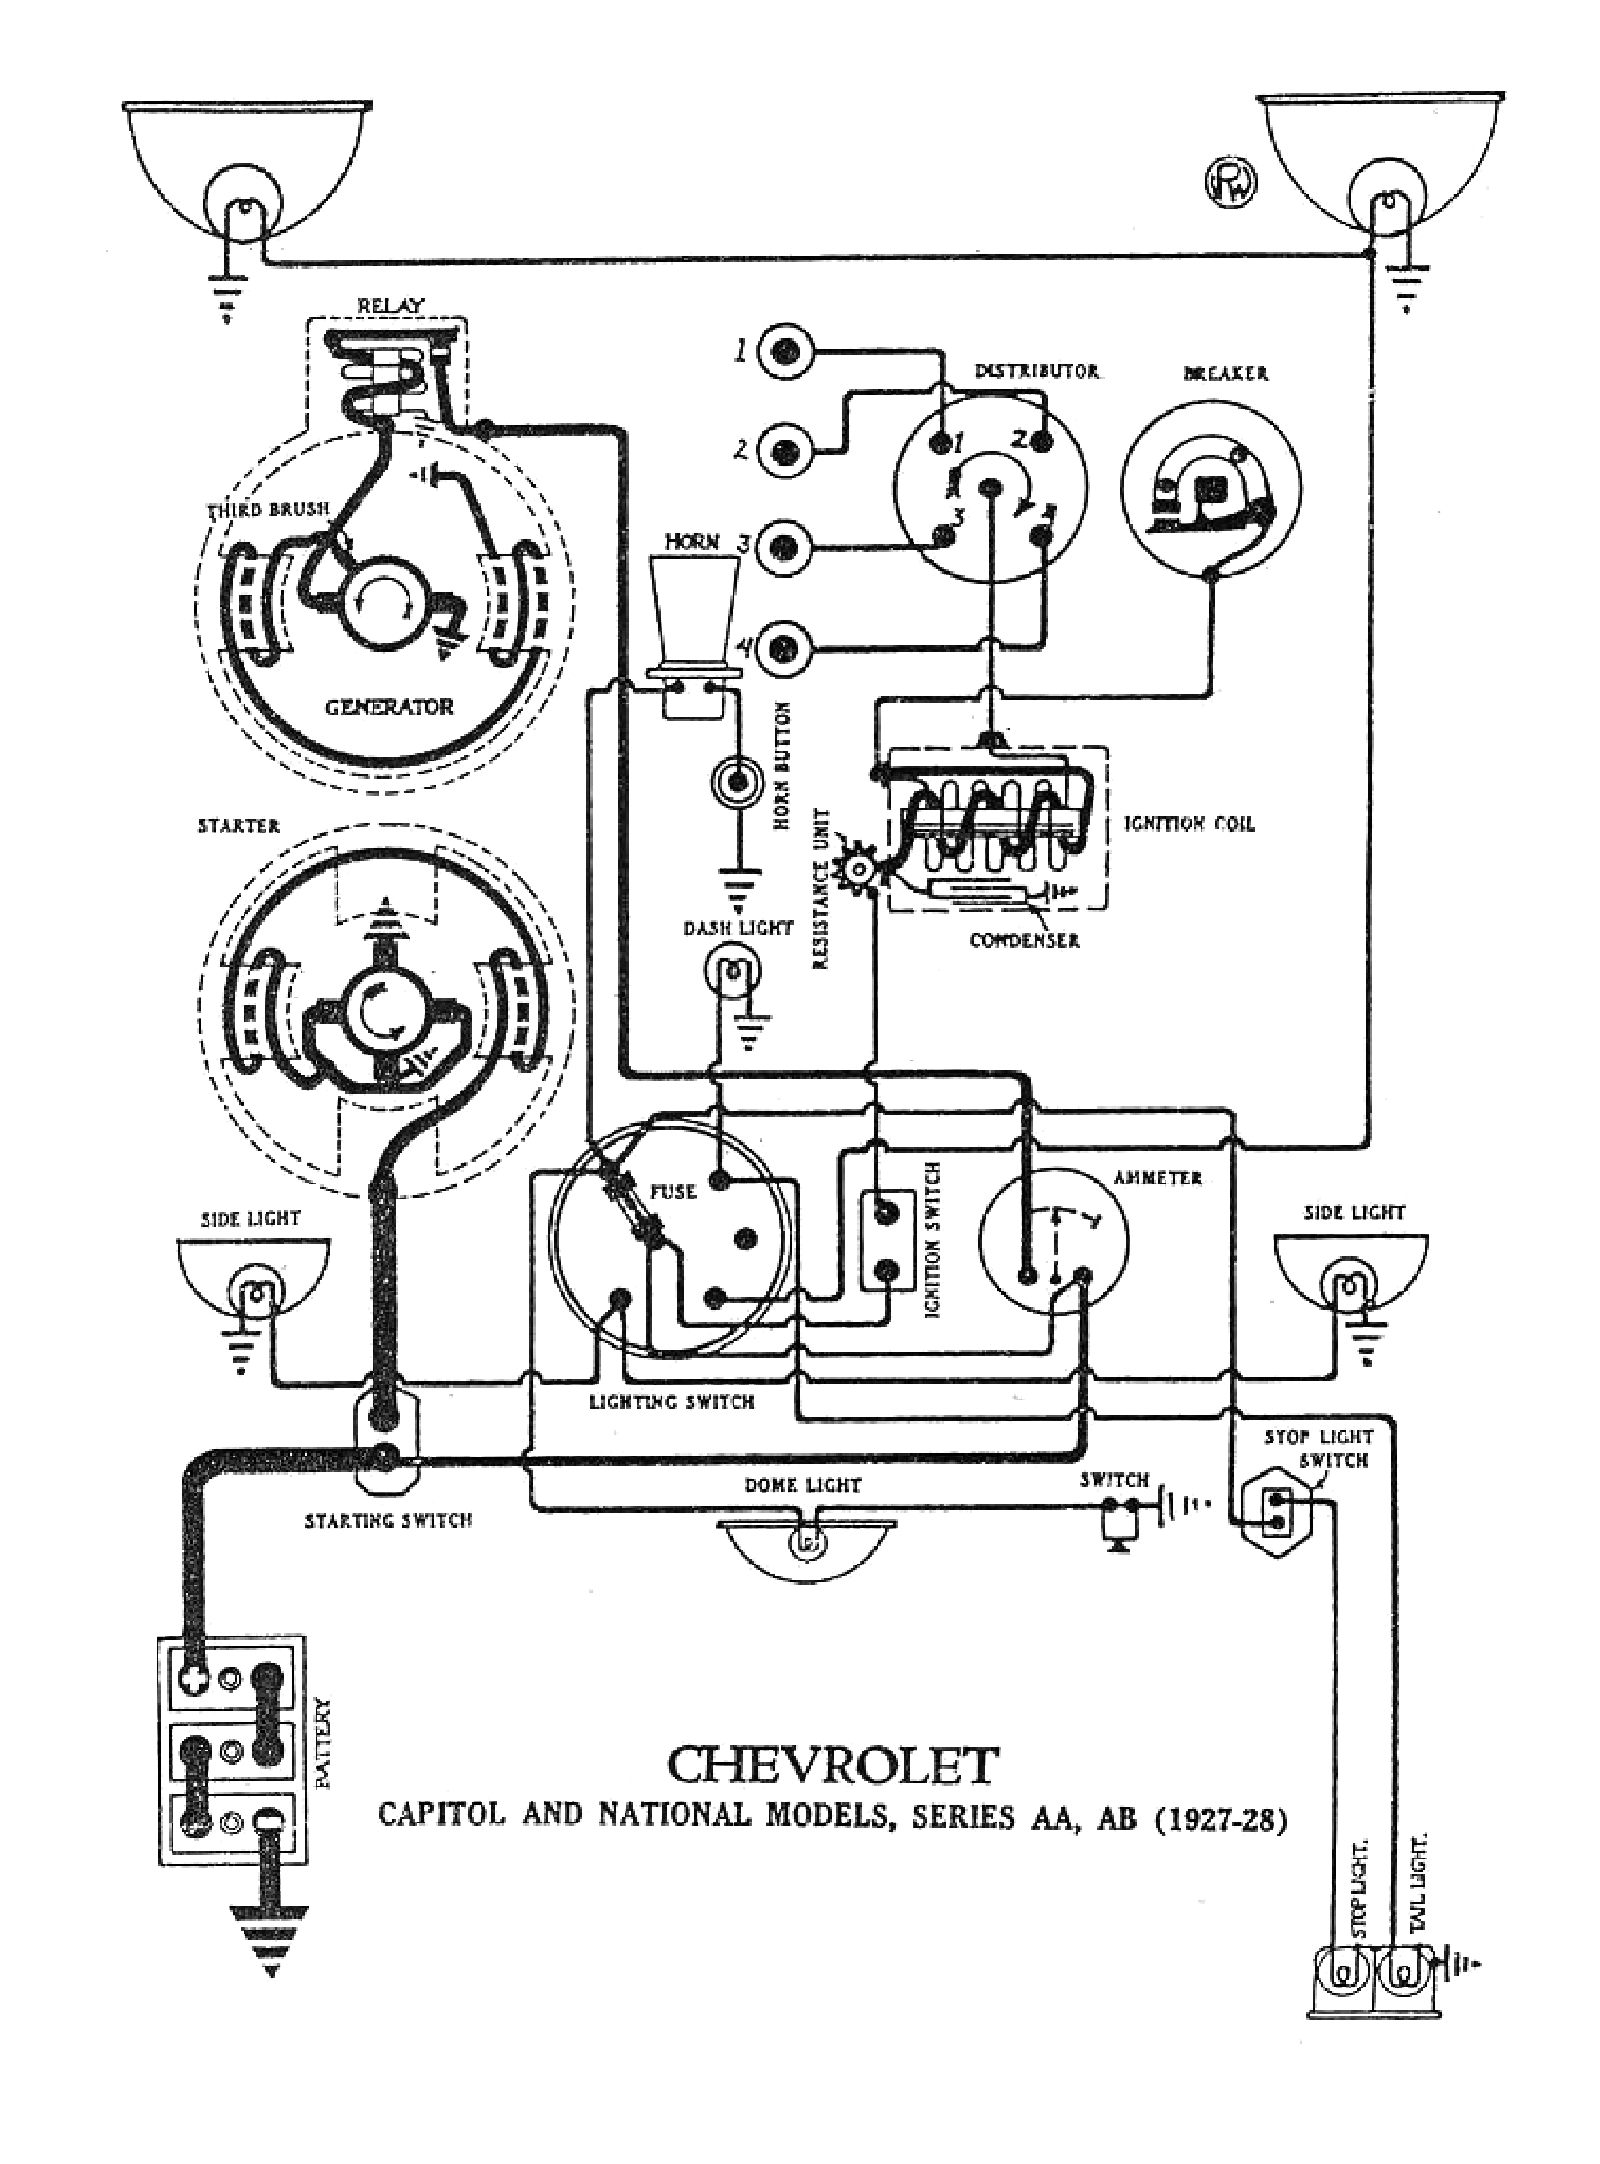 chevy wiring diagrams gm wiring schematics 1927 capitol & national models 1928, 1928 wiring diagrams